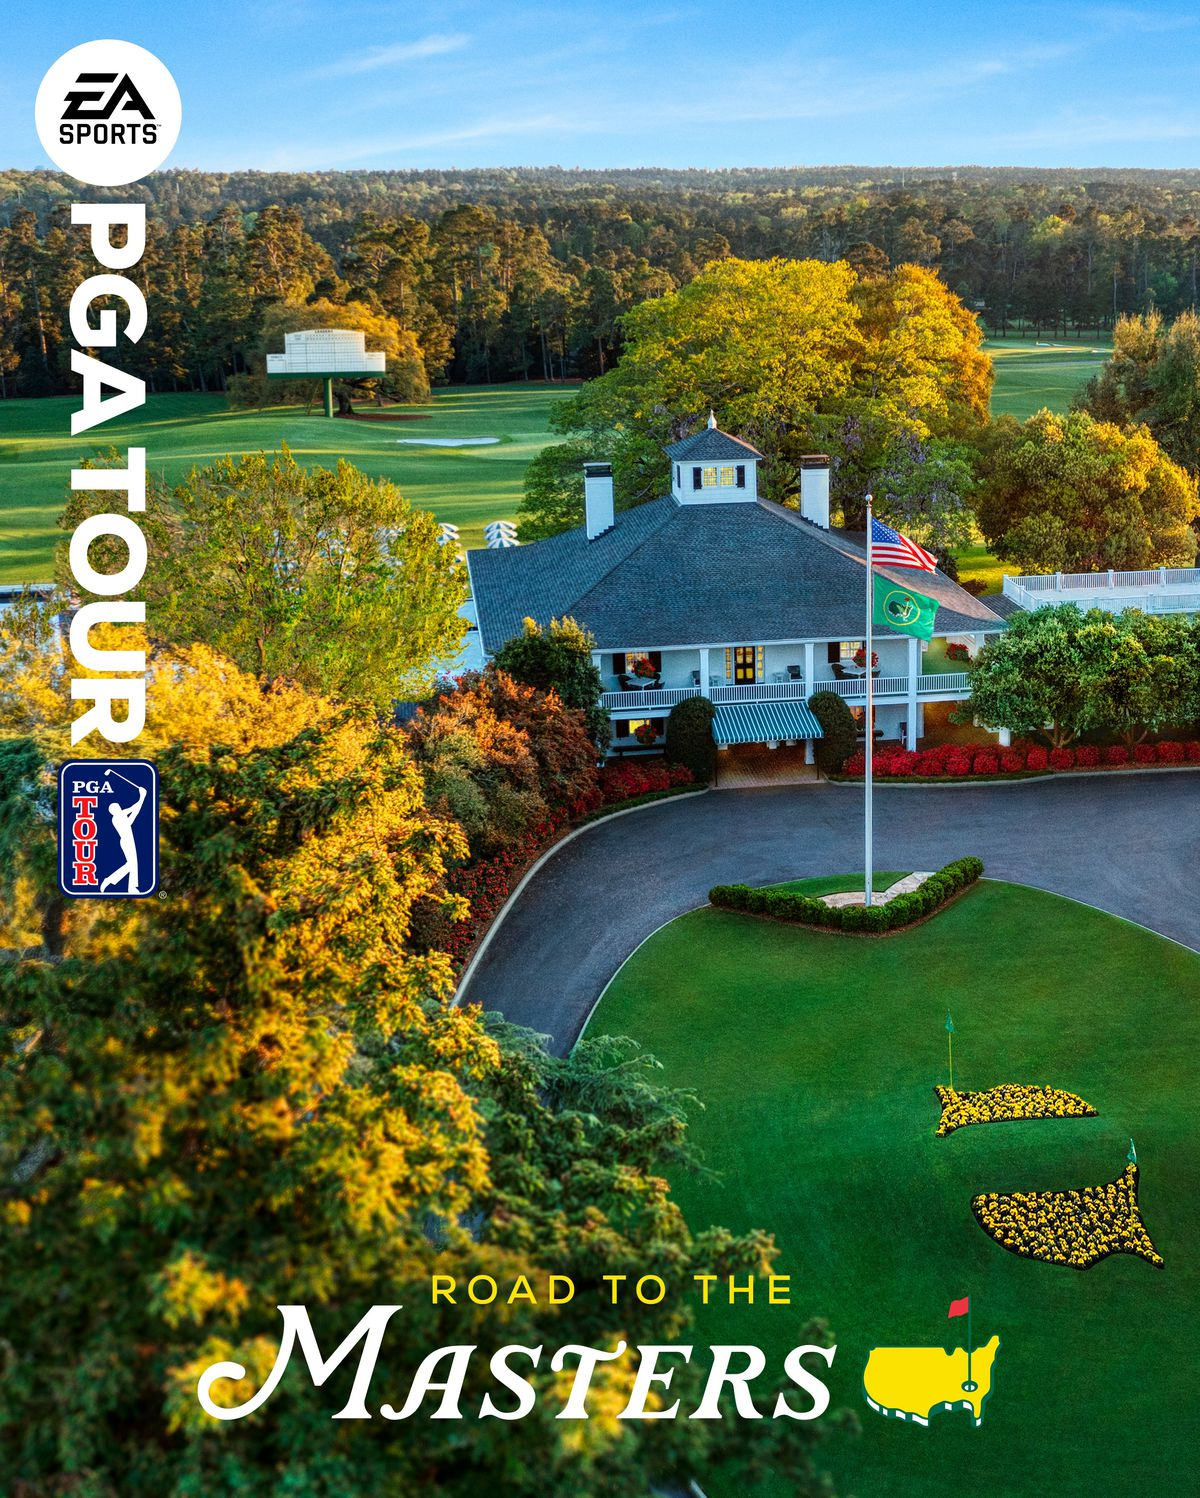 """the cover art for EA Sports PGA Tour, featuring an overhead photo of the clubhouse at Augusta National Golf Club and the words """"Road to the Masters"""""""